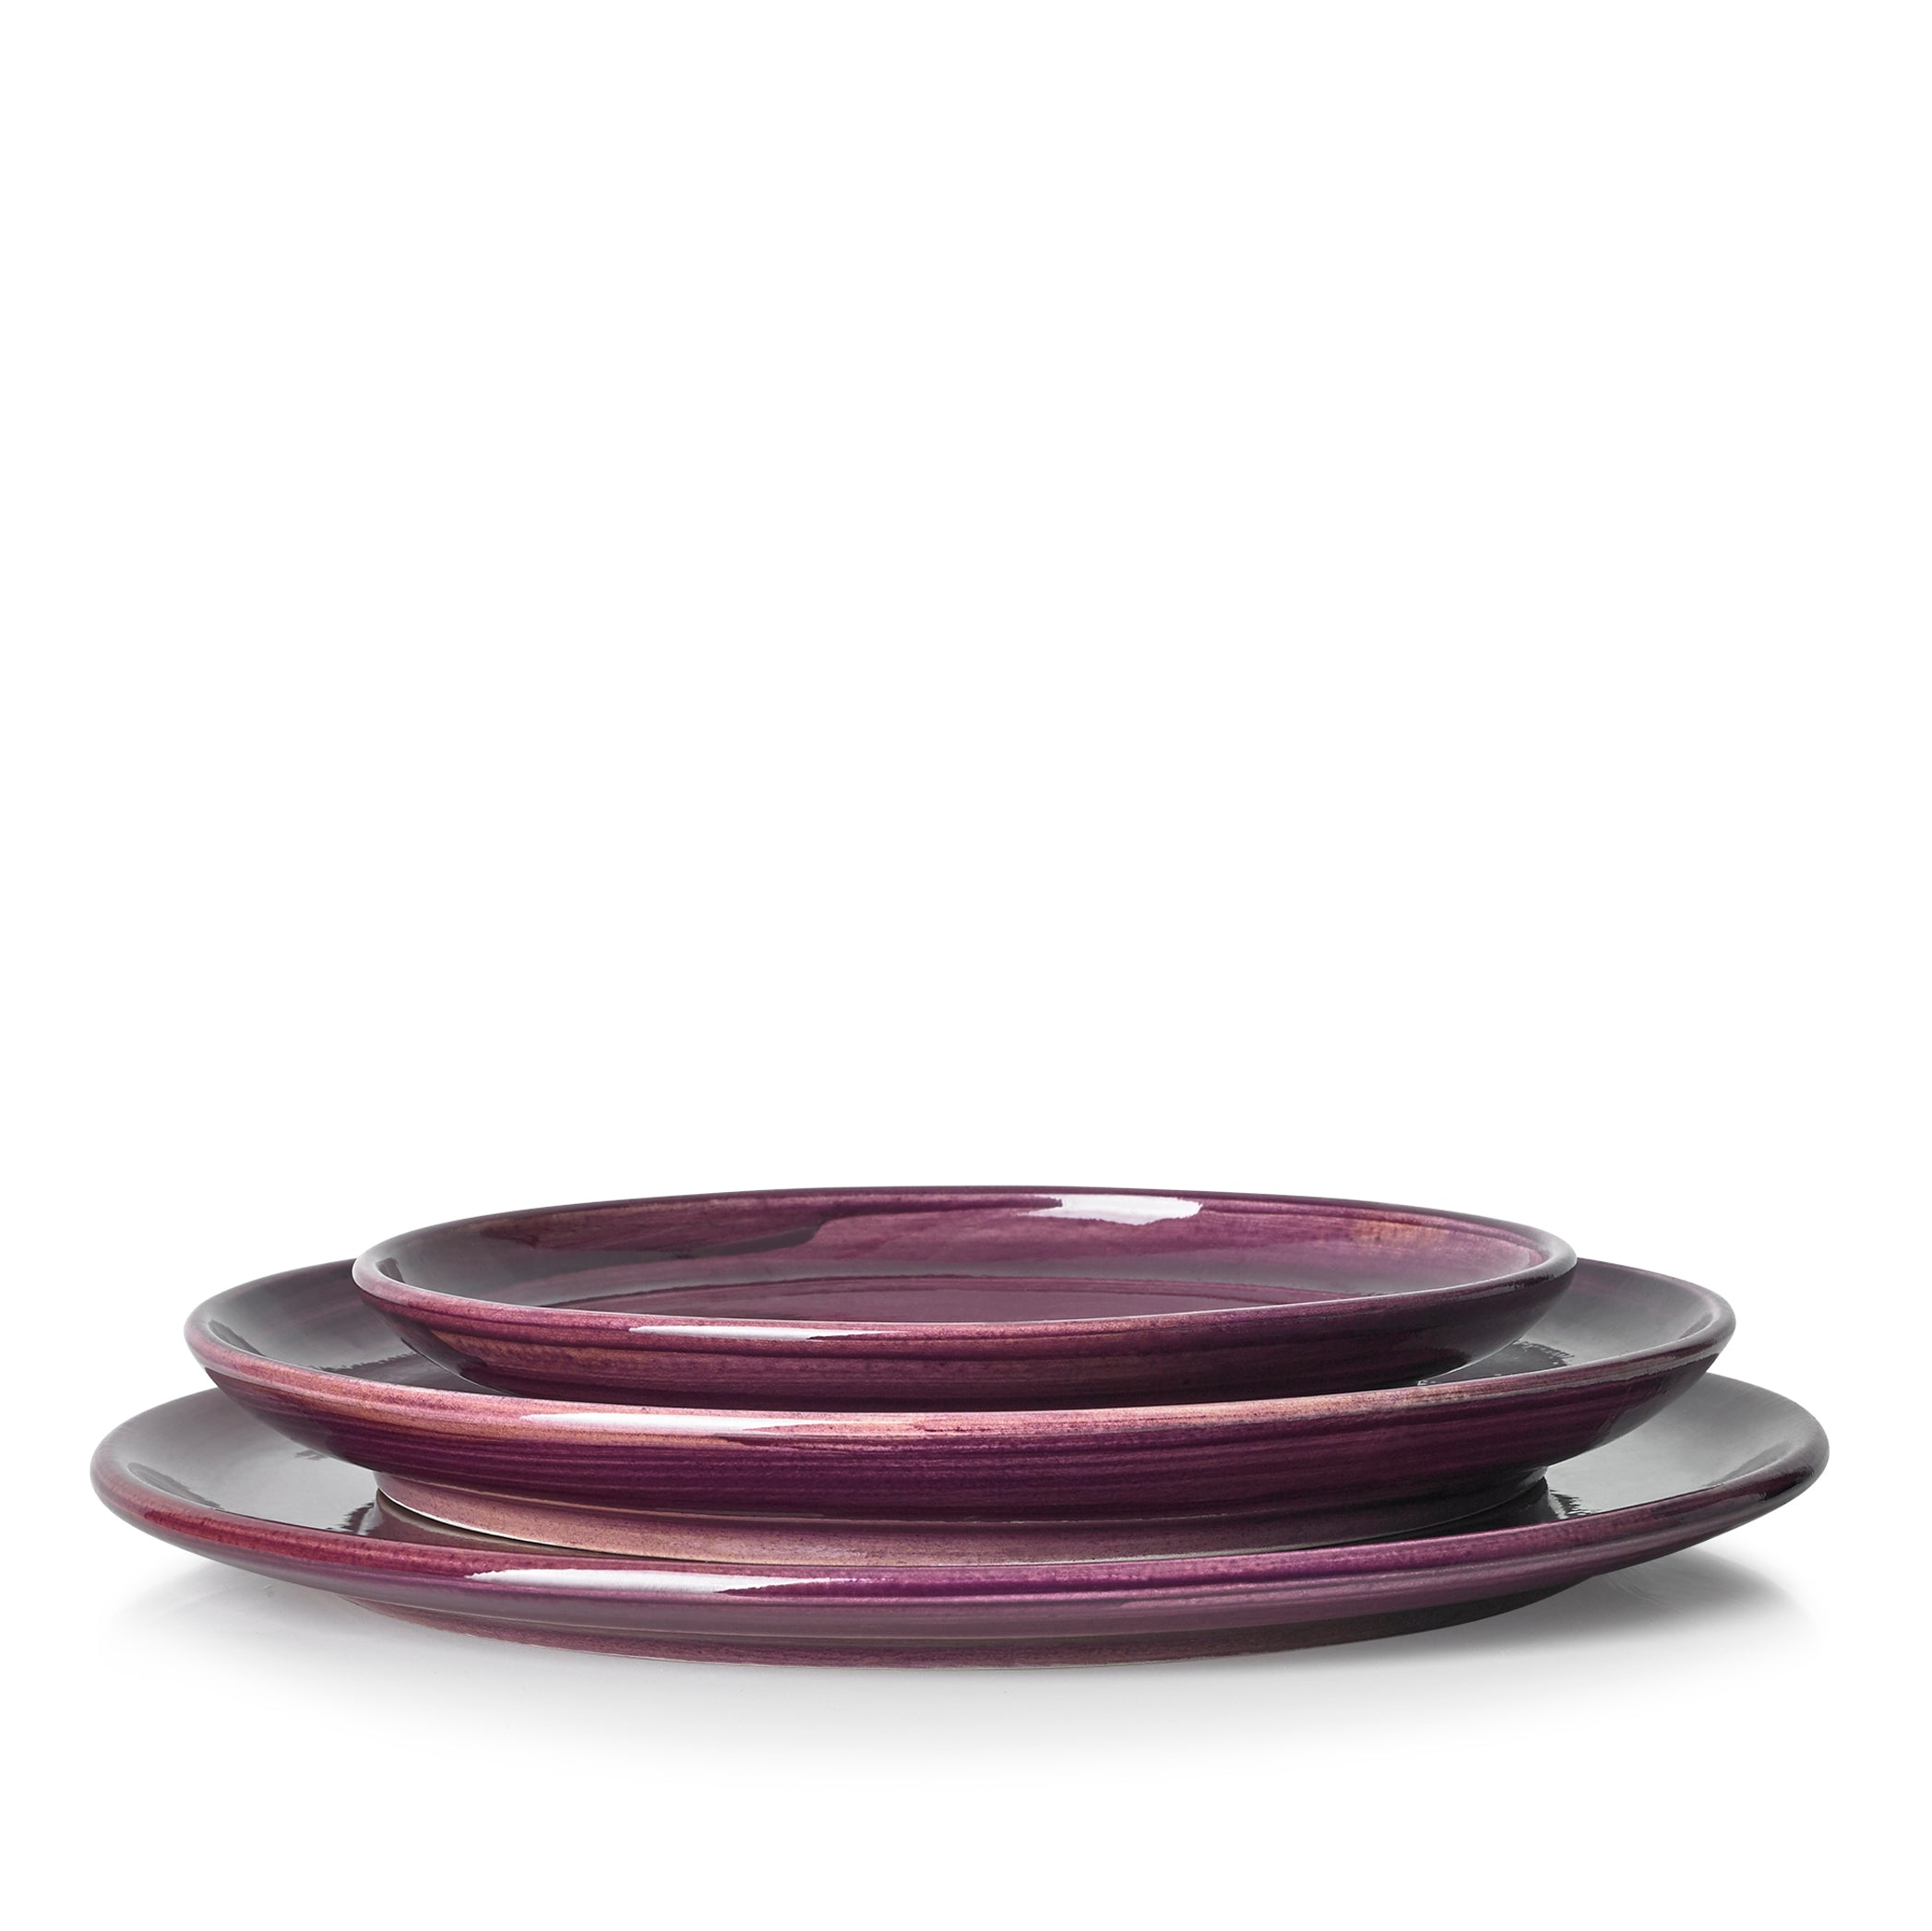 "S&B ""La Couronne"" 29cm Ceramic Tart / Cake Plate in Purple"